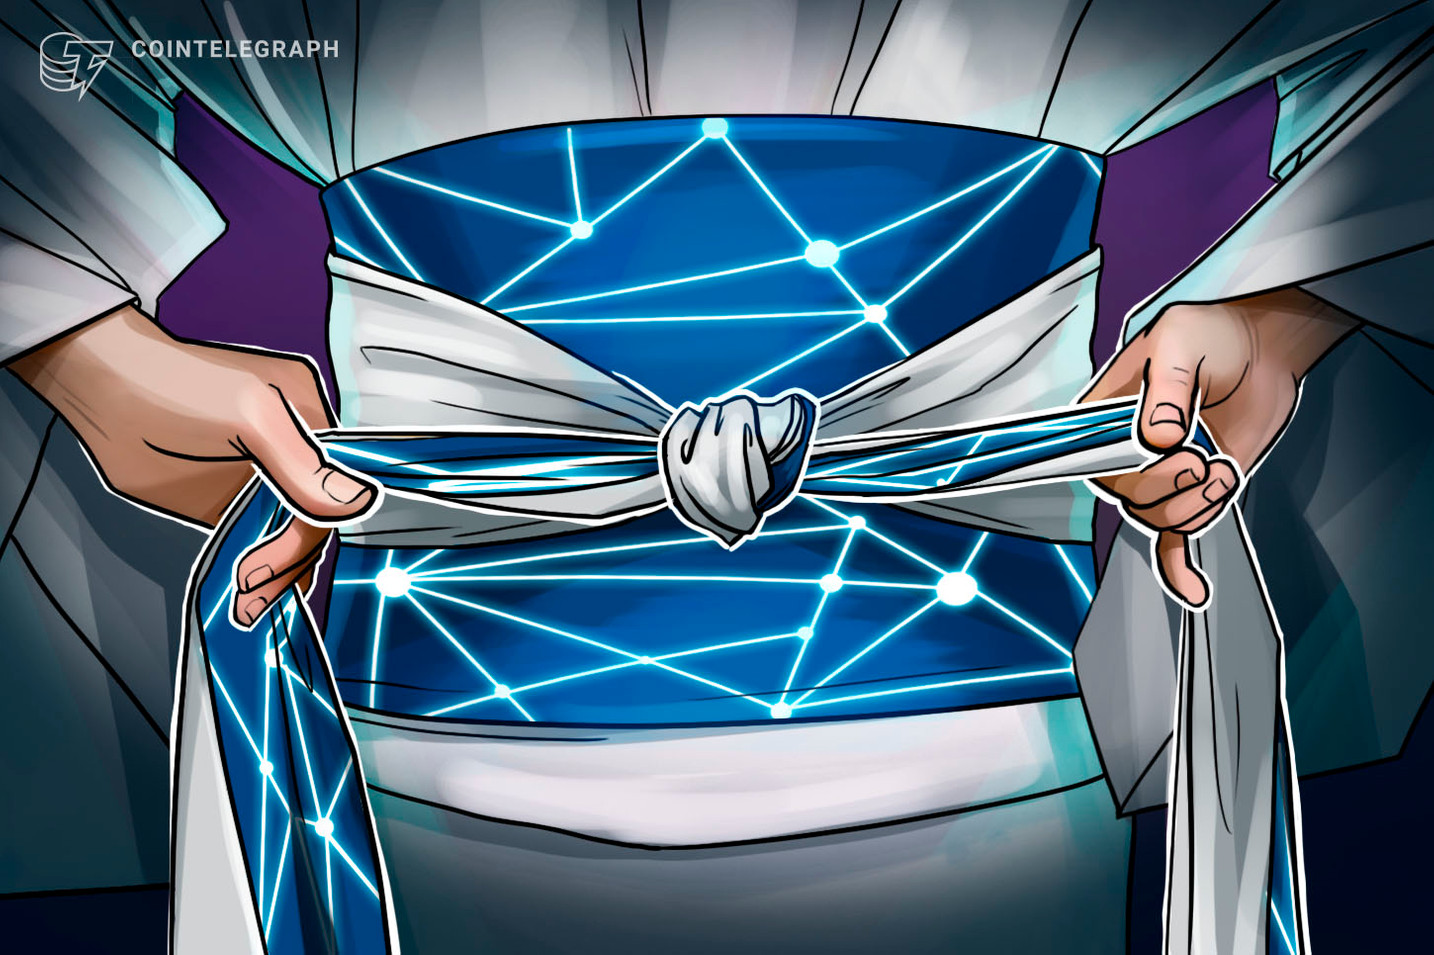 Japanese Trading Giant Itochu to Develop Blockchain Traceability System in PoC